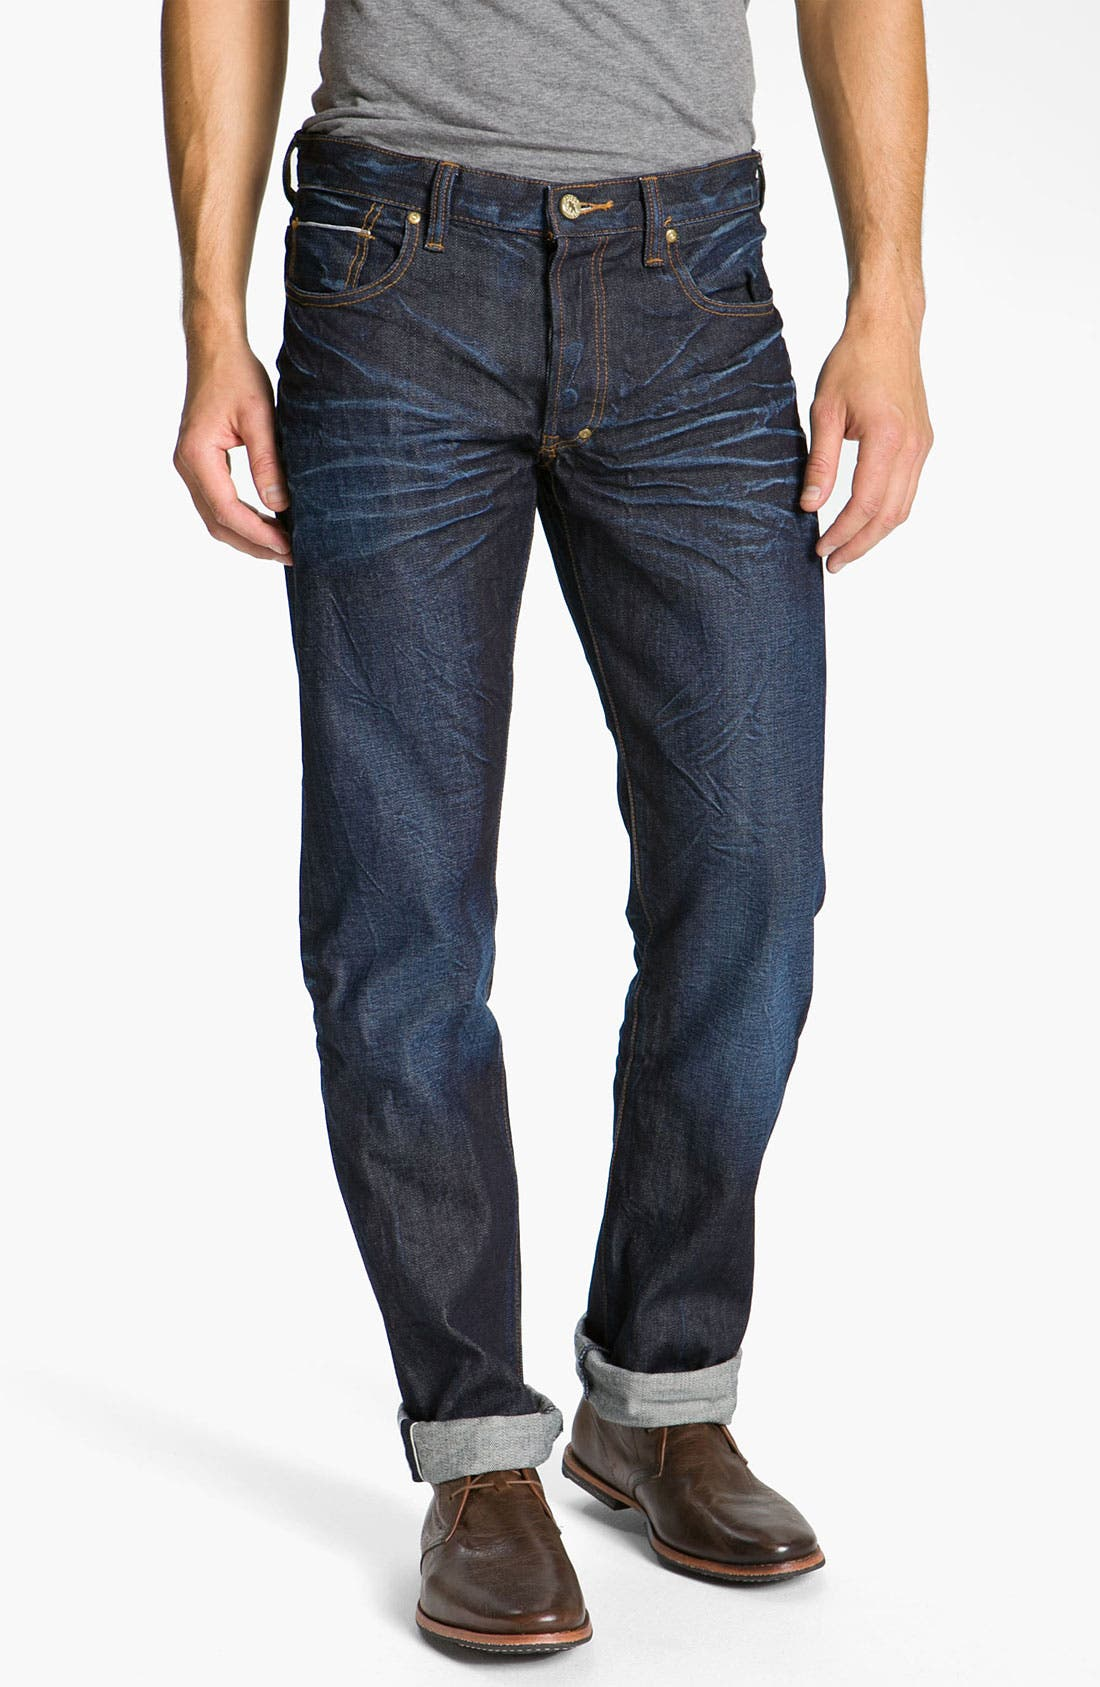 Alternate Image 2  - PRPS 'Snowy Crevasses Barracuda' Straight Leg Jeans (1 Year Wash)